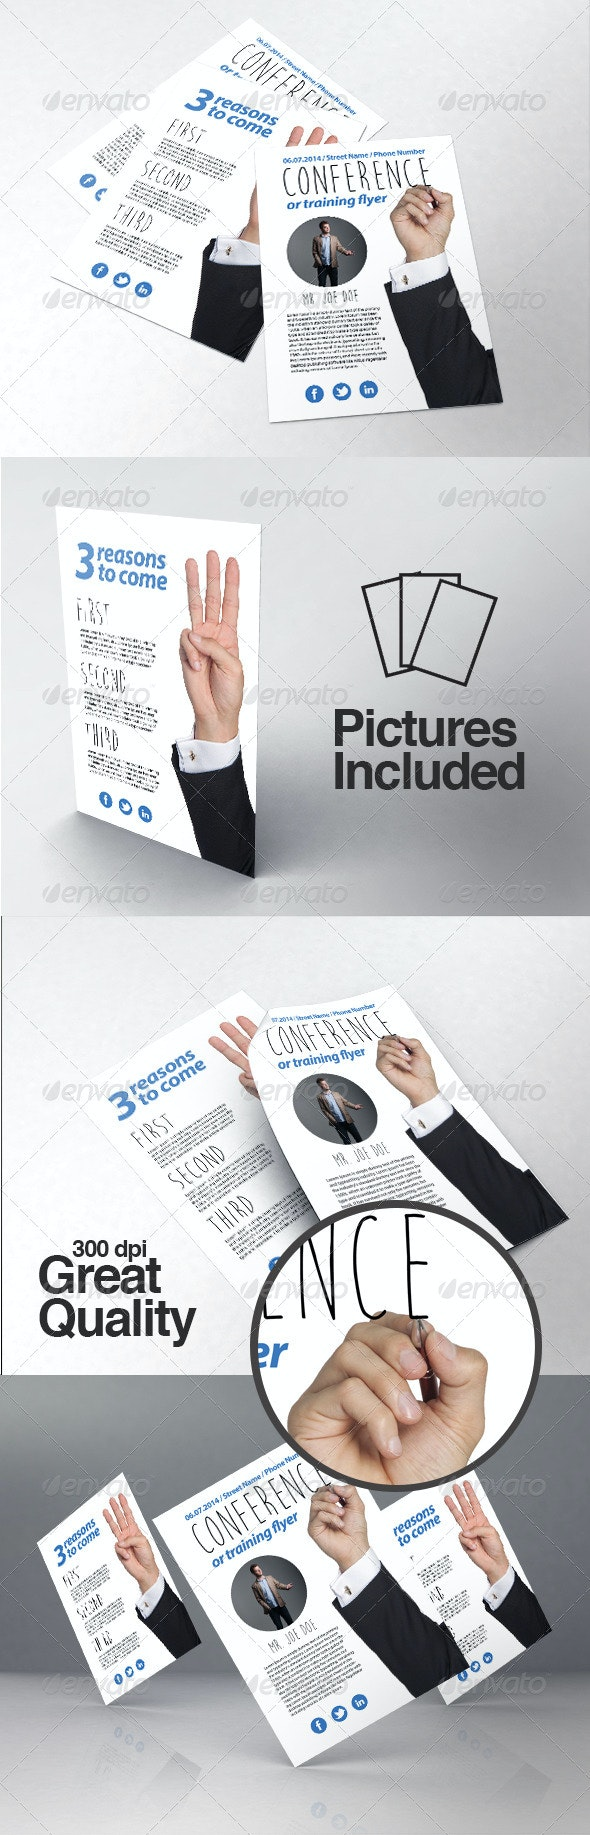 Business / Training / Course Flyer Template - Corporate Flyers